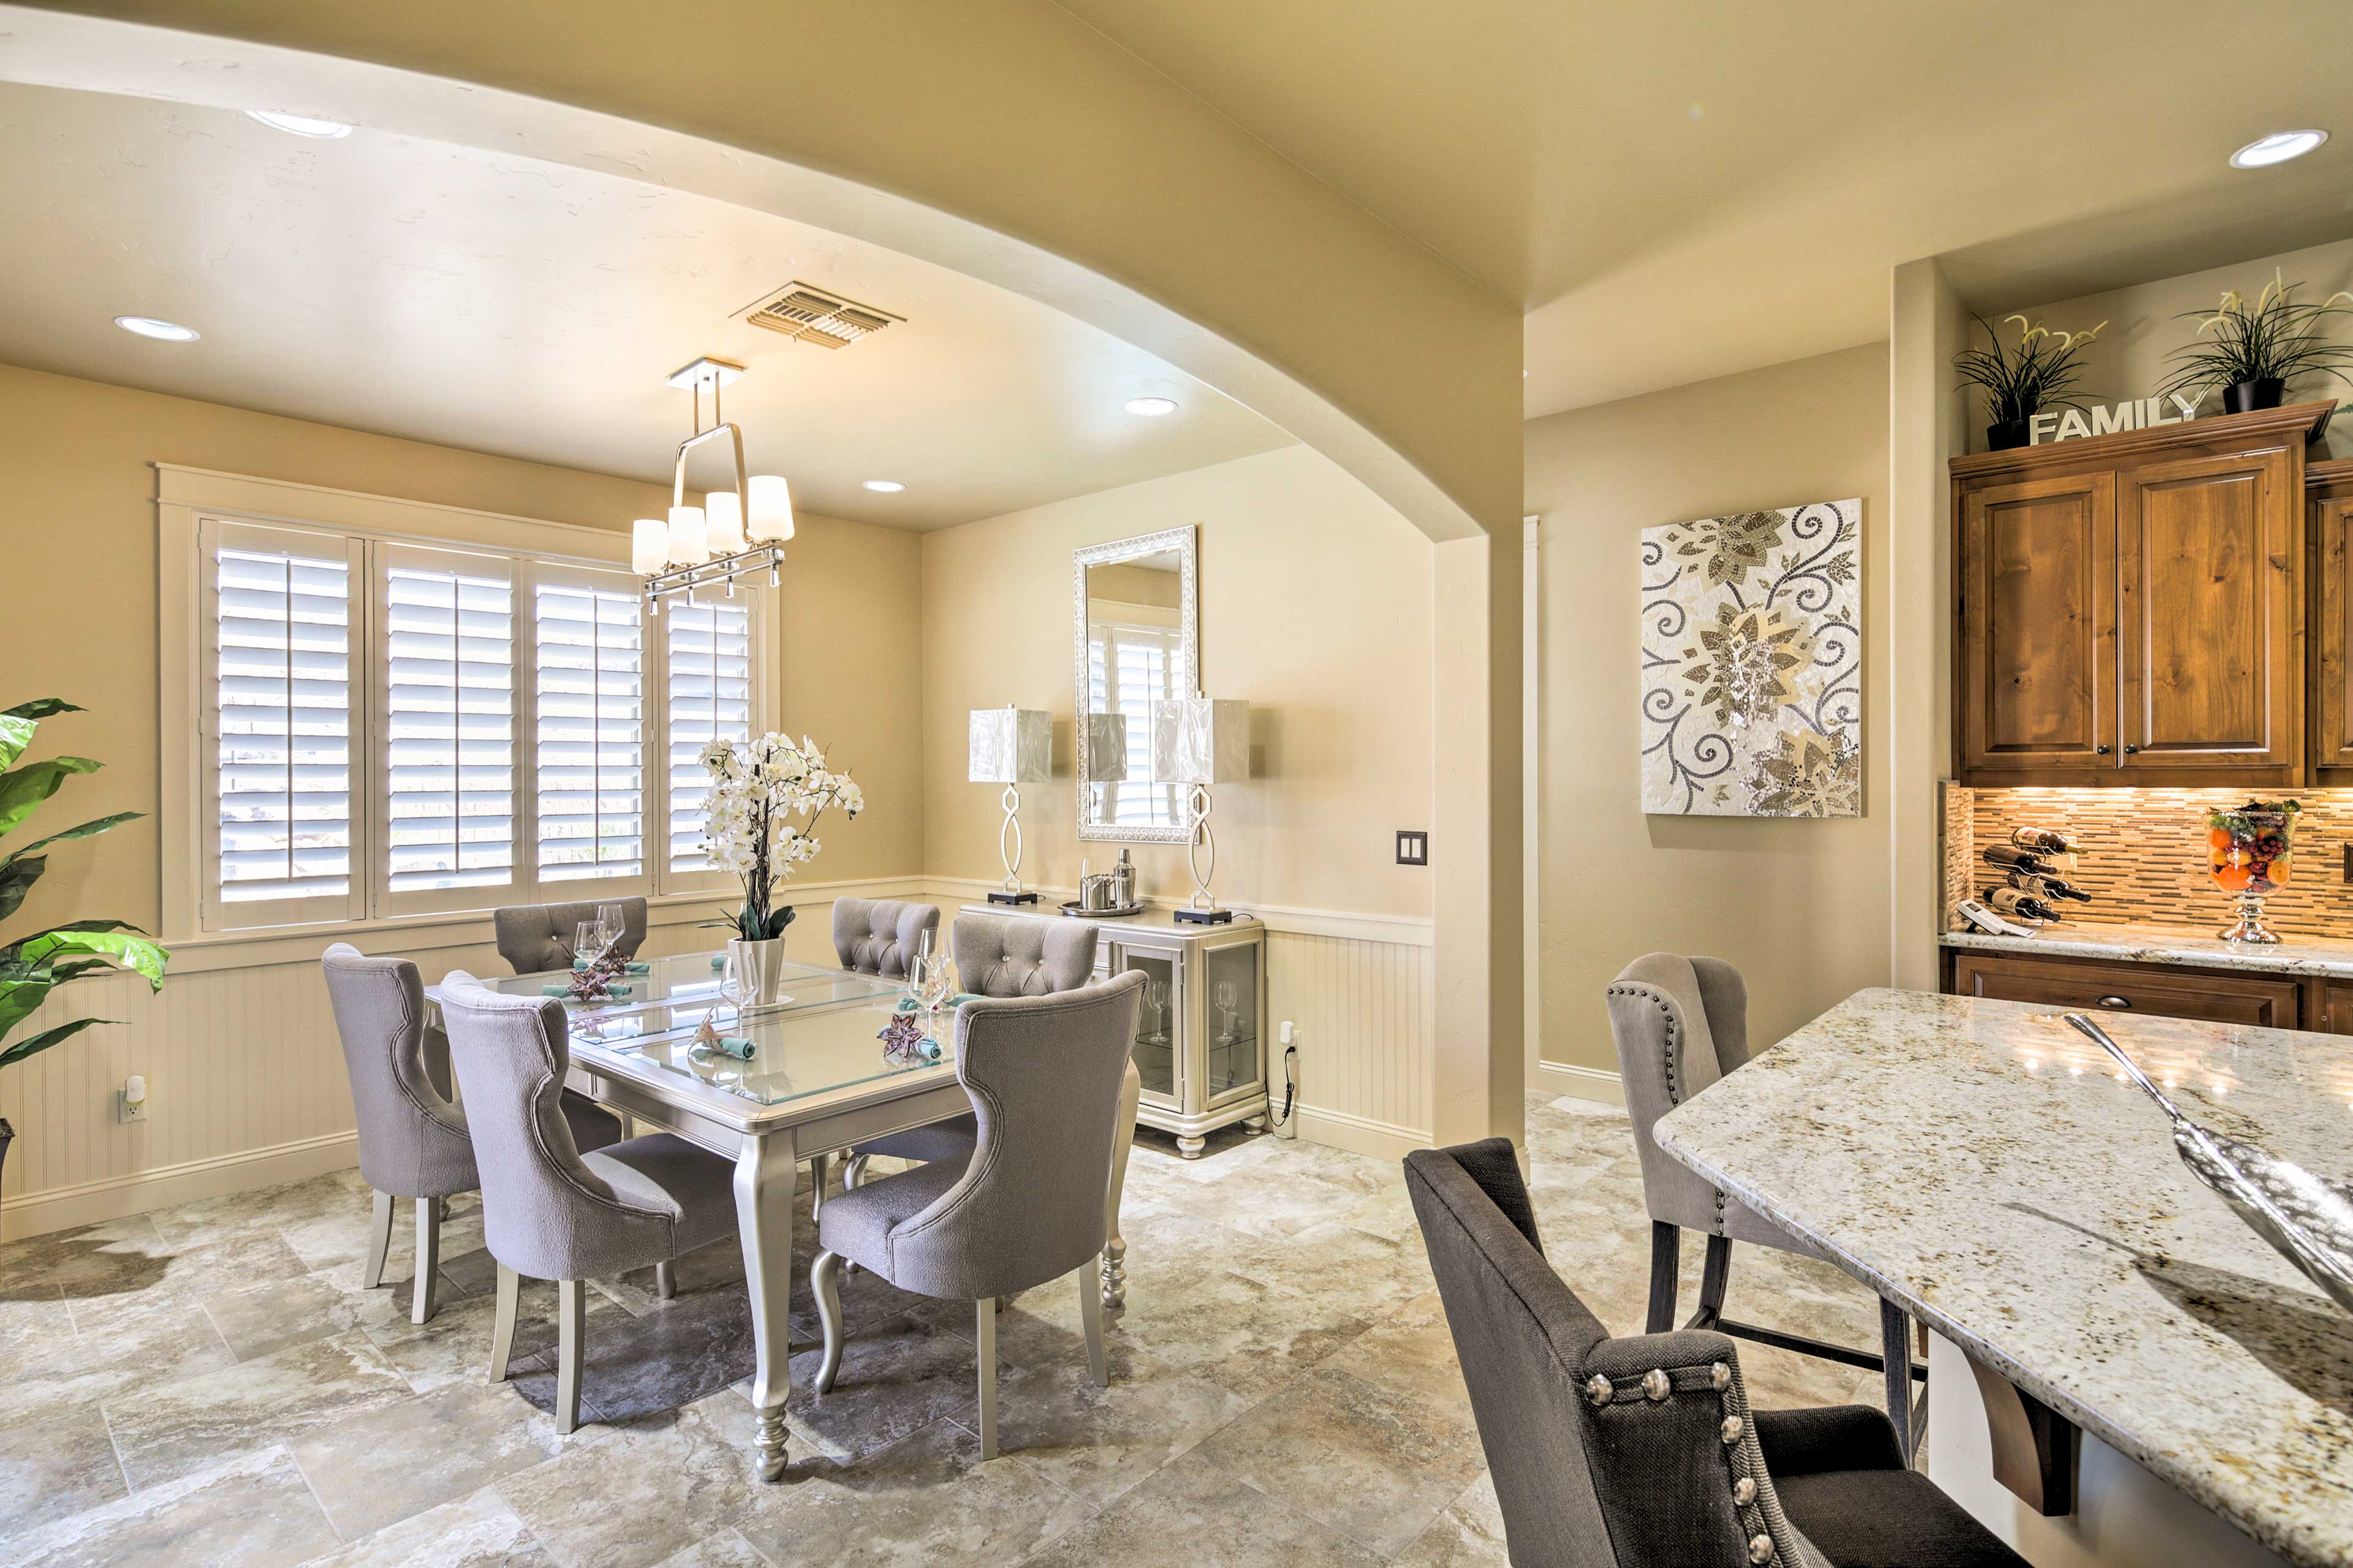 Share a home-cooked meal around this 6-person dining table.